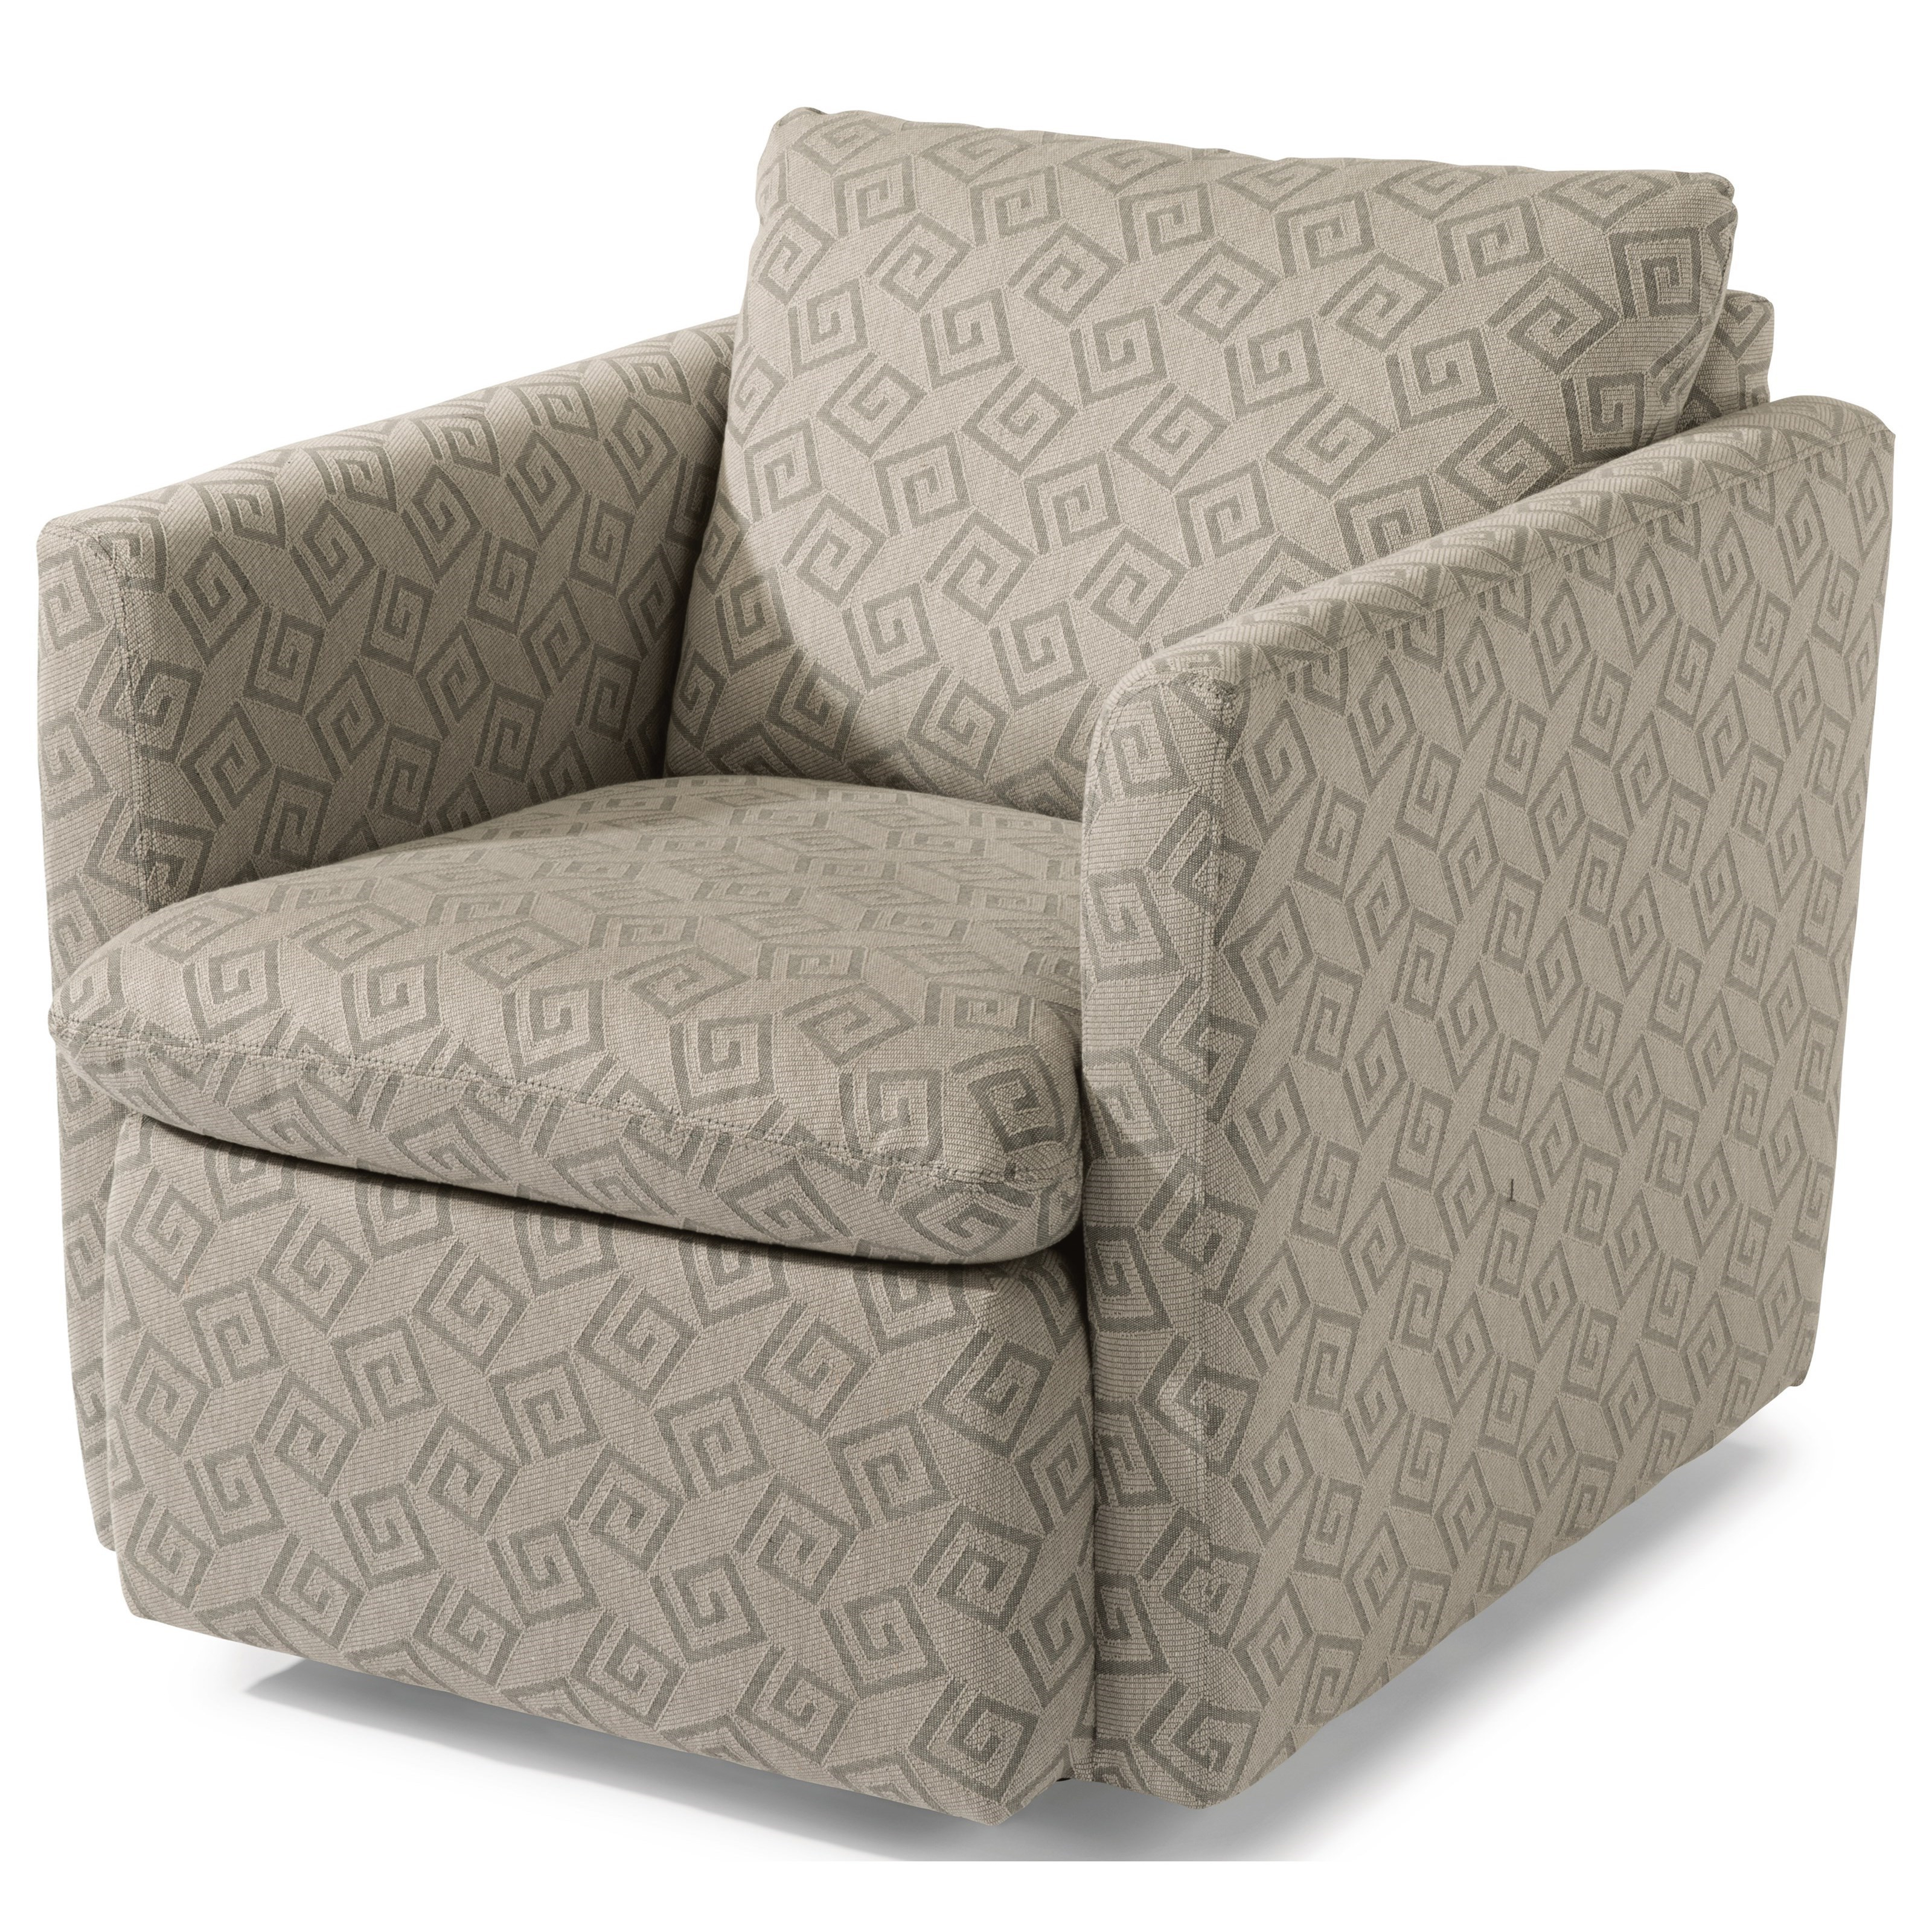 Flexsteel Kendall 7934 11 Contemporary Swivel Chair With Flare Throughout Best And Newest Umber Grey Swivel Accent Chairs (View 4 of 20)